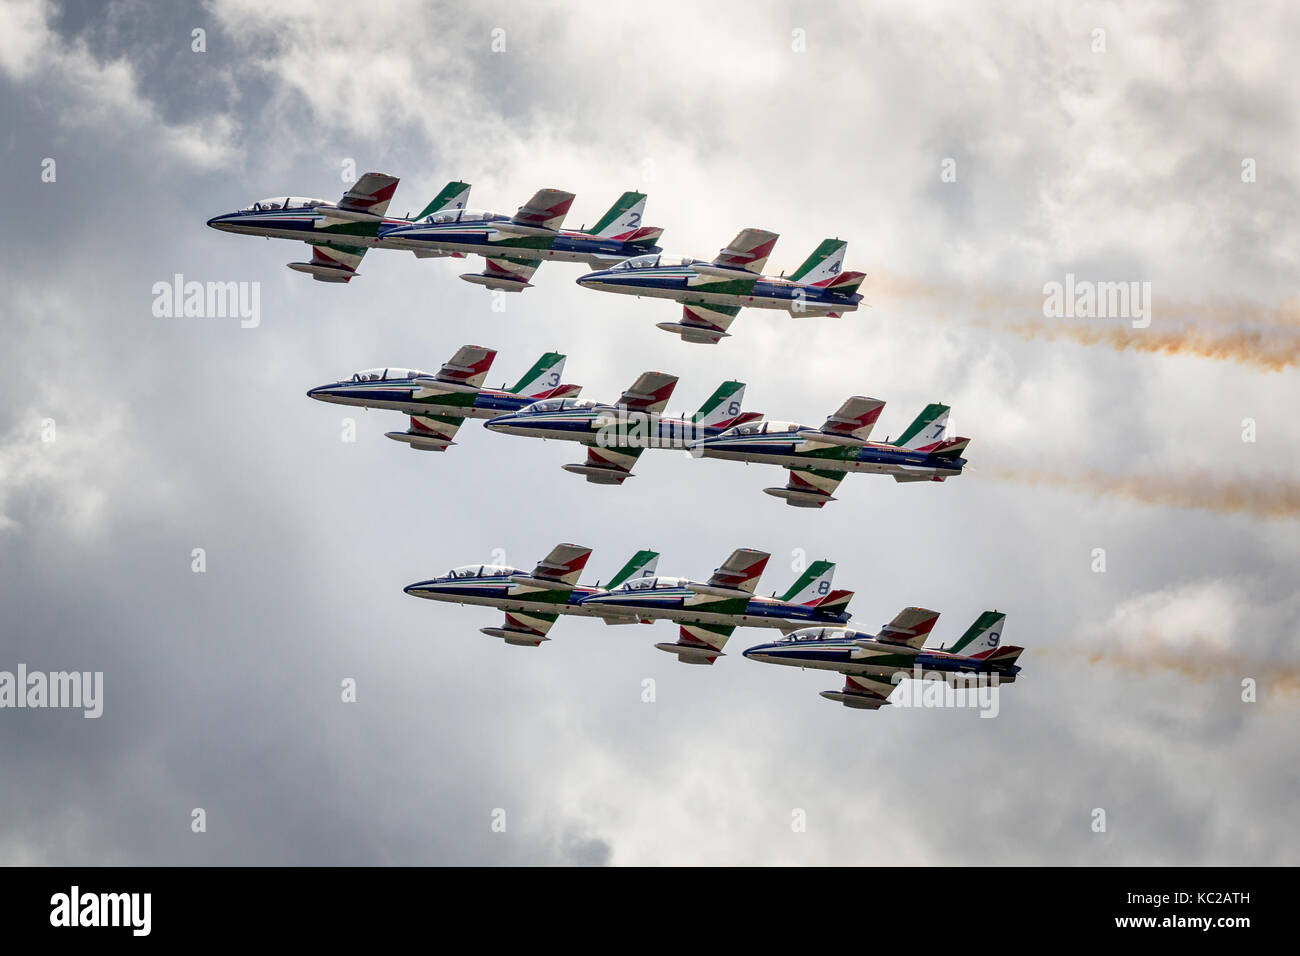 Frecce Tricolori, Aerobatic team of Italian airforce, Sion Airshow, Sion, Valais, Switzerland, - Stock Image